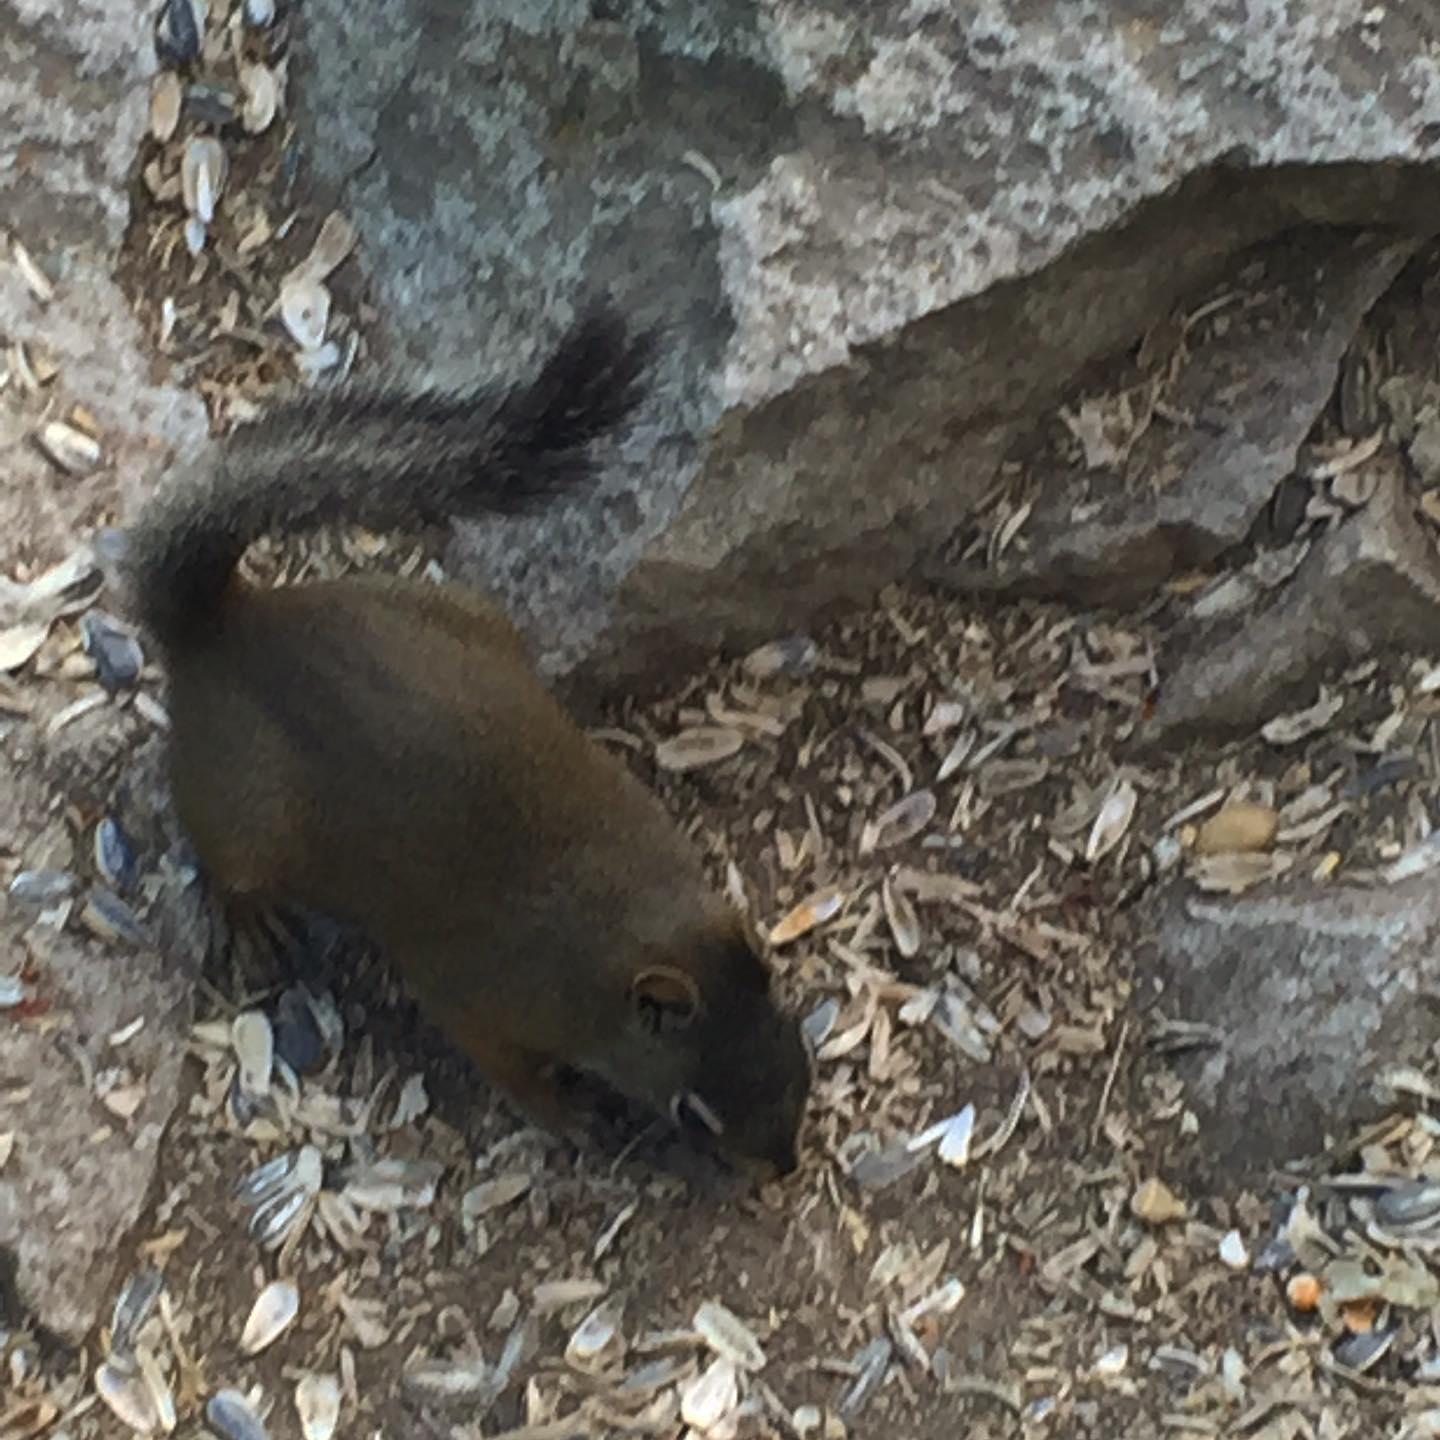 Chipmunks are everywhere at Swan Mountain! Come out and enjoy the beautiful views and scenery. #swanmountain #chipmunks #wildlife